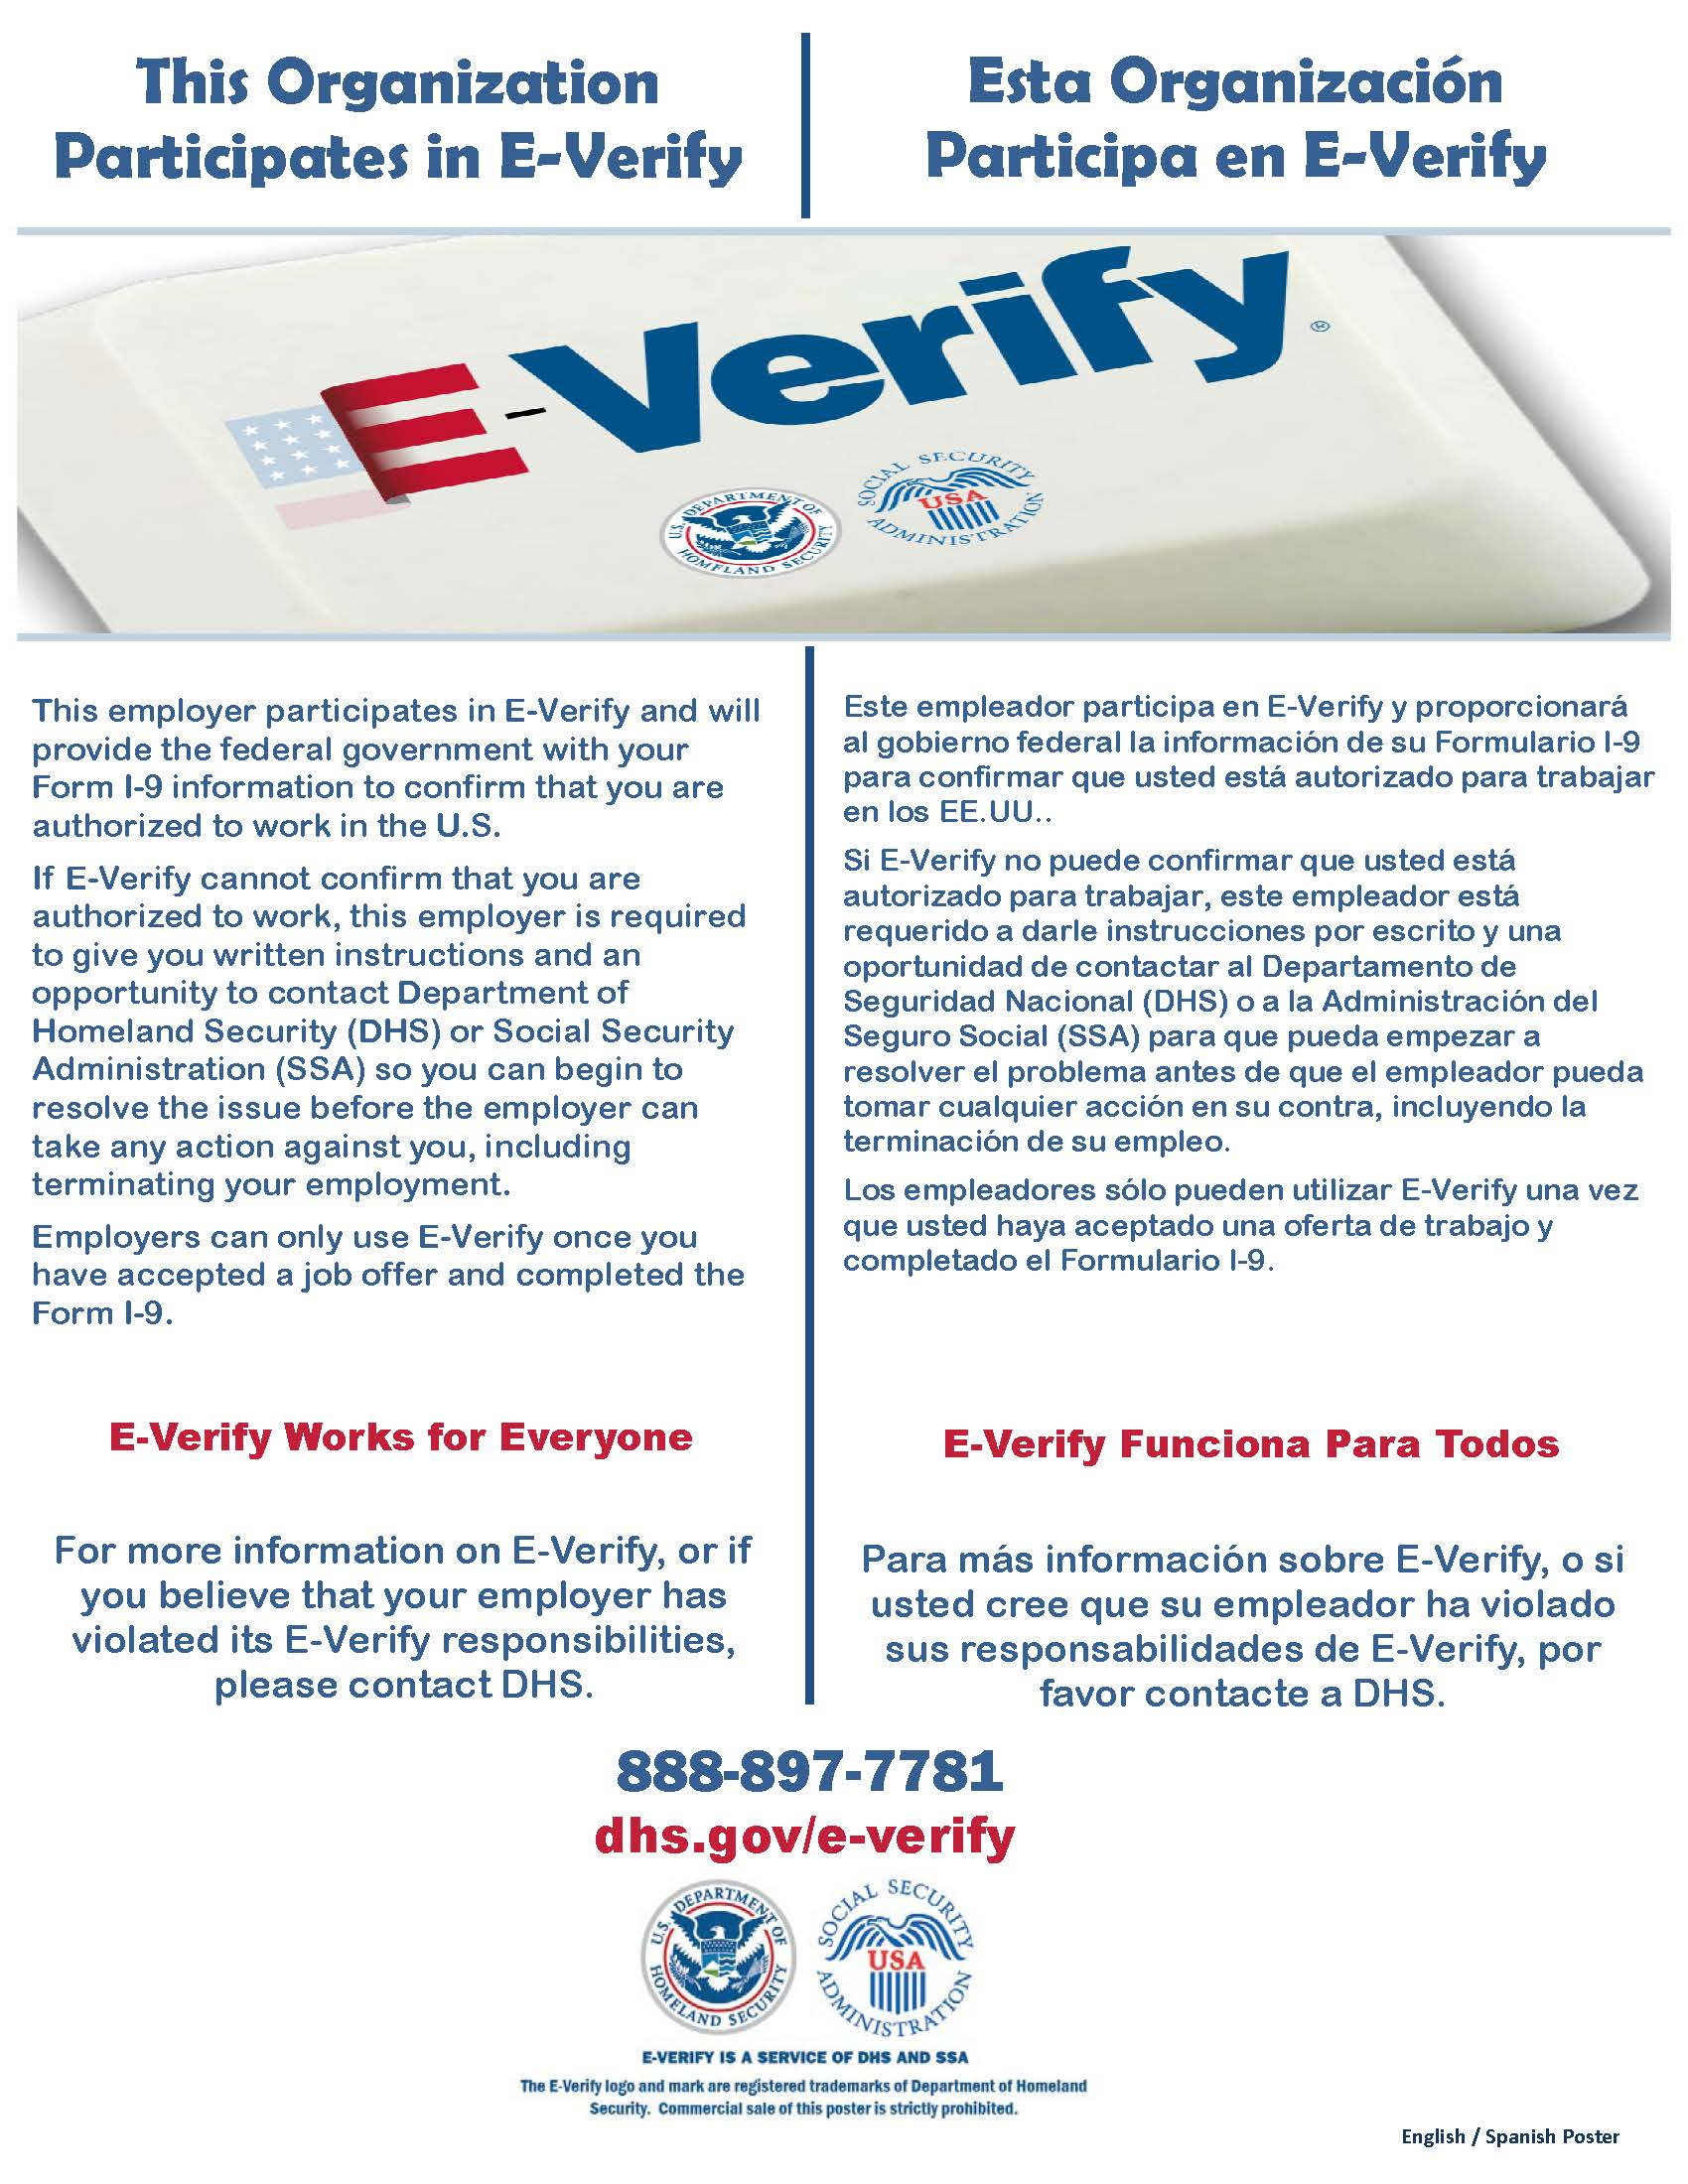 E Verify Participation Poster ES1